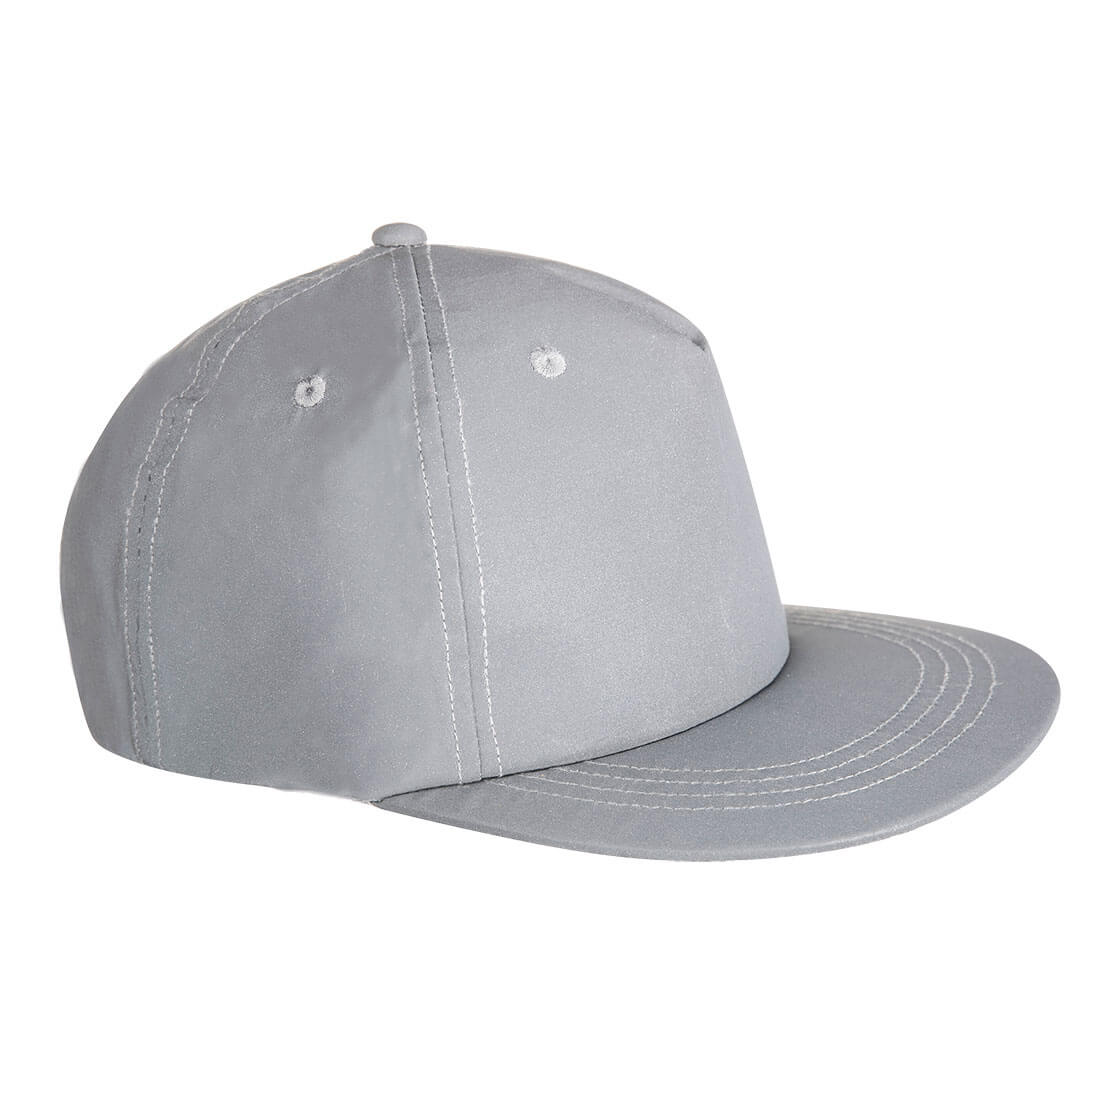 Image of Portwest Reflective Baseball Cap Silver One Size